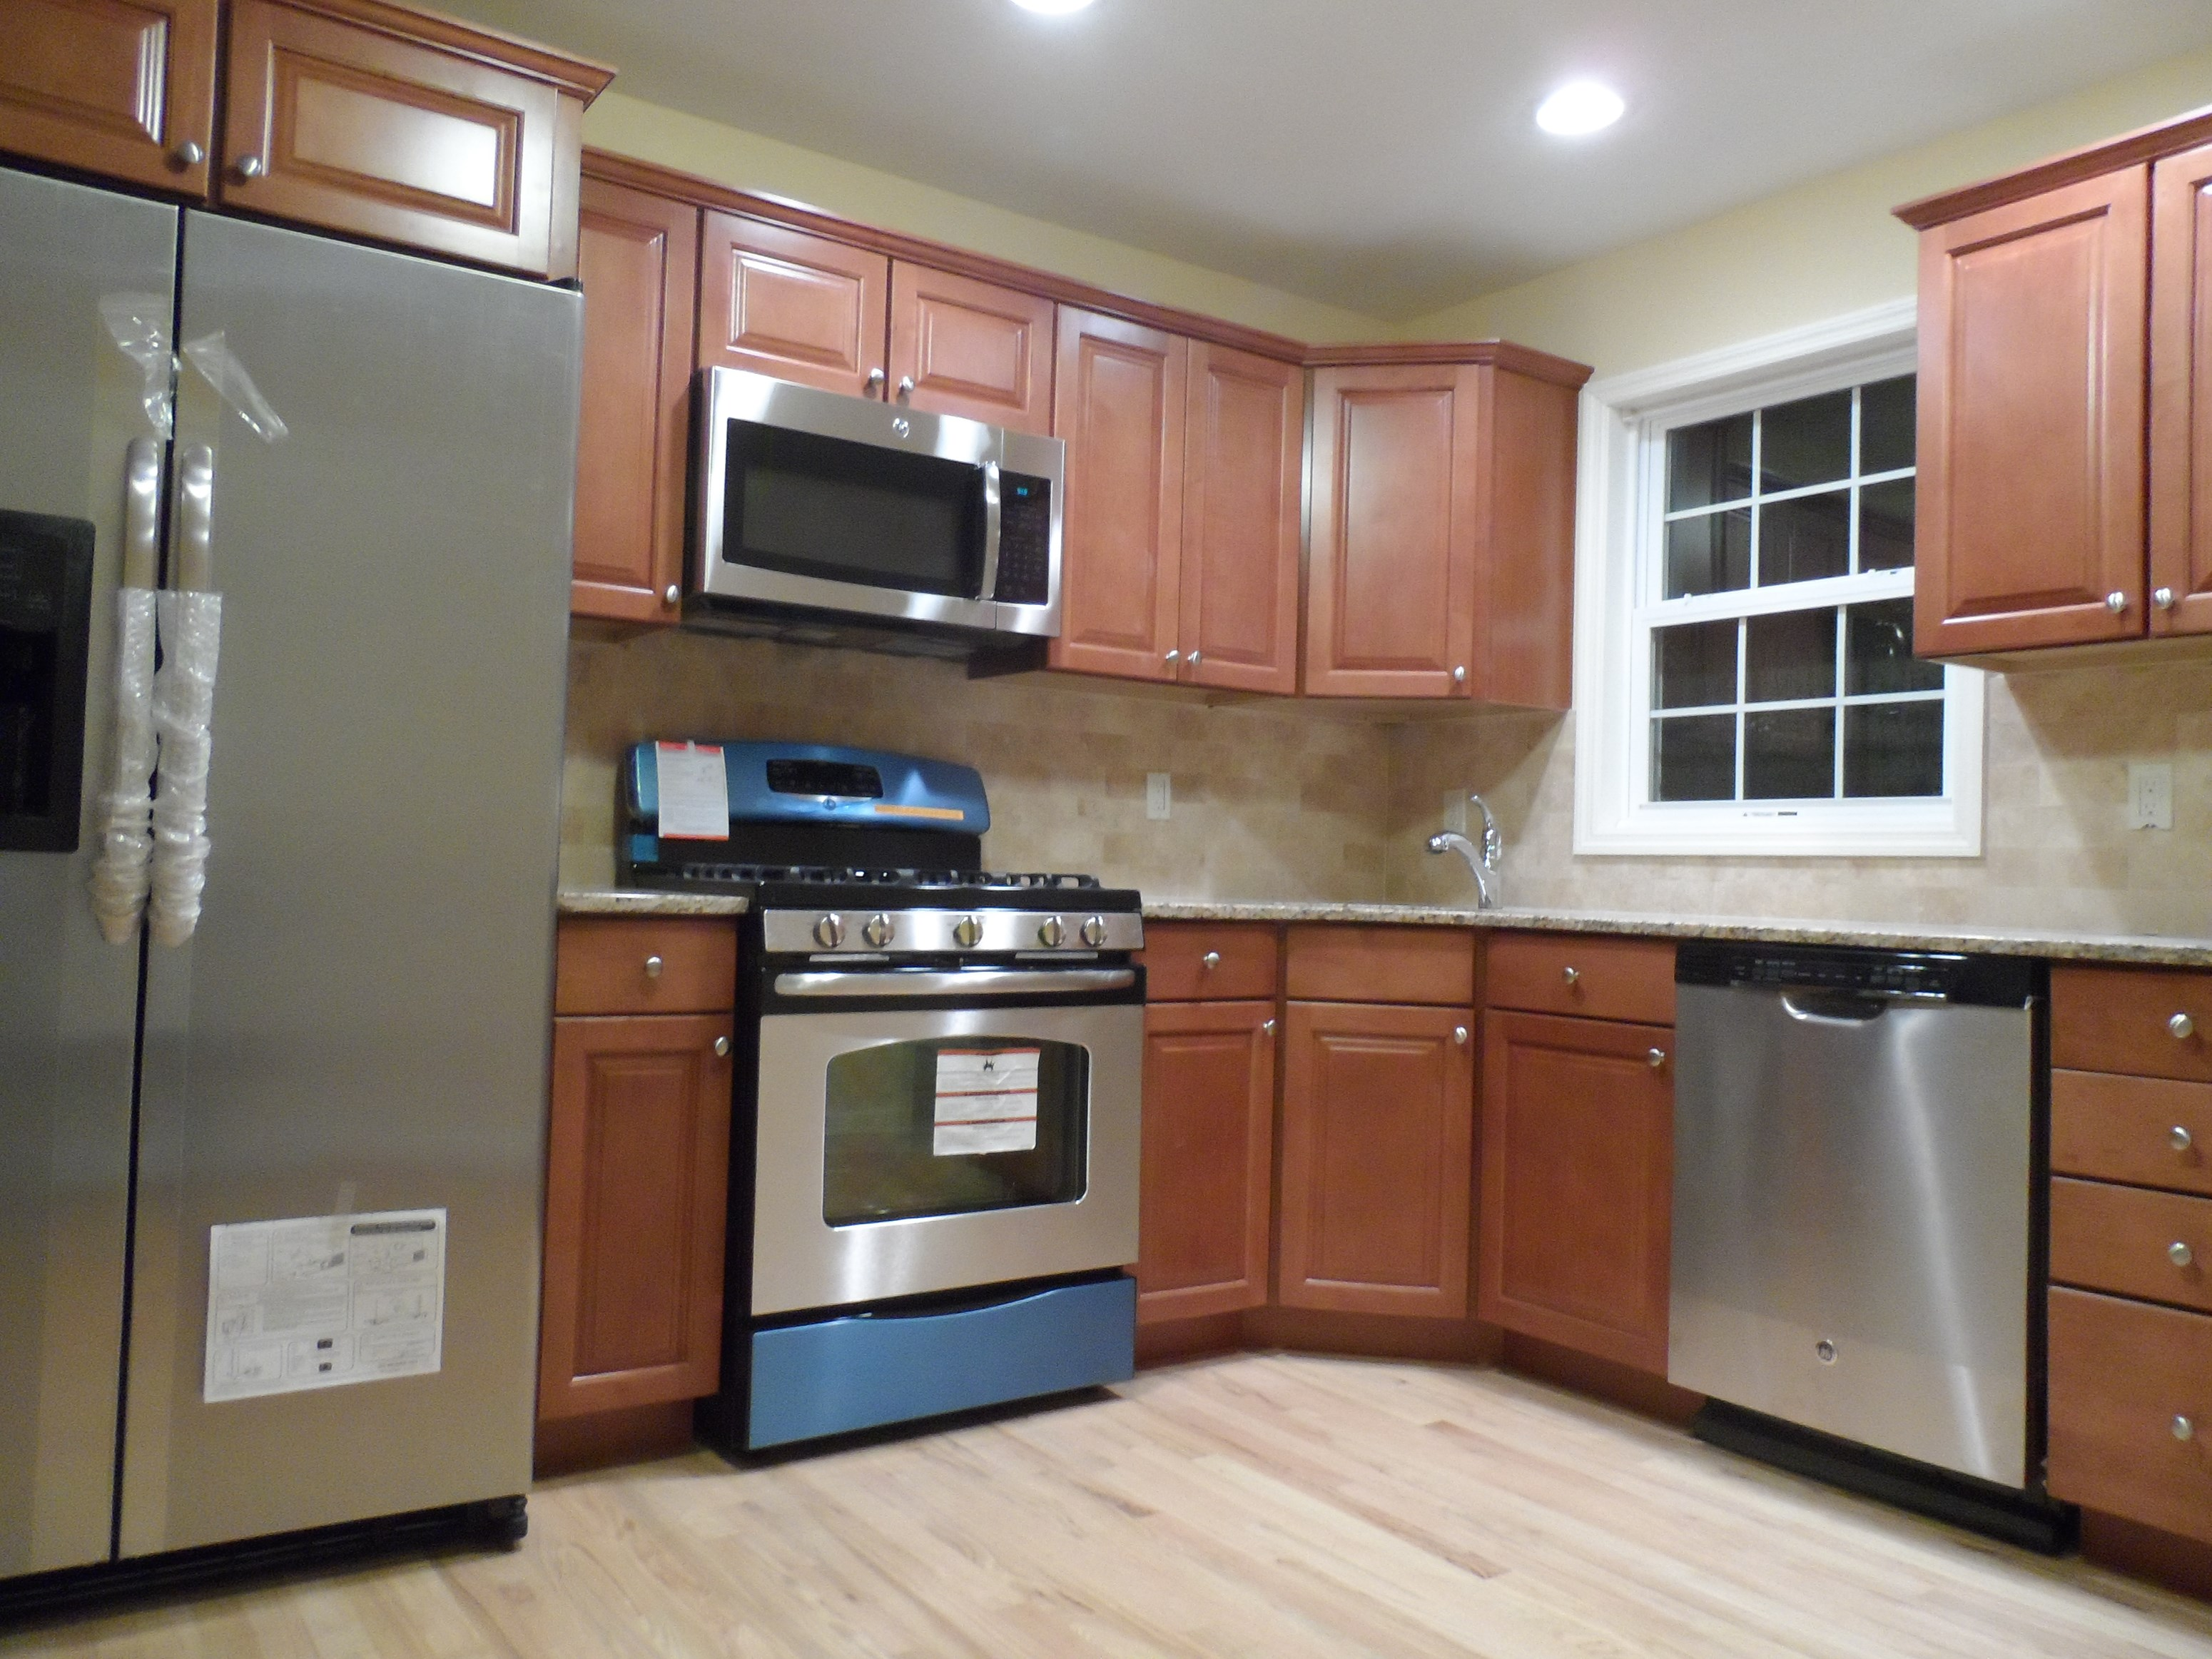 House For Rent In New York  Apartments Flats Commercial Space - Student apartment smallest new york apartments